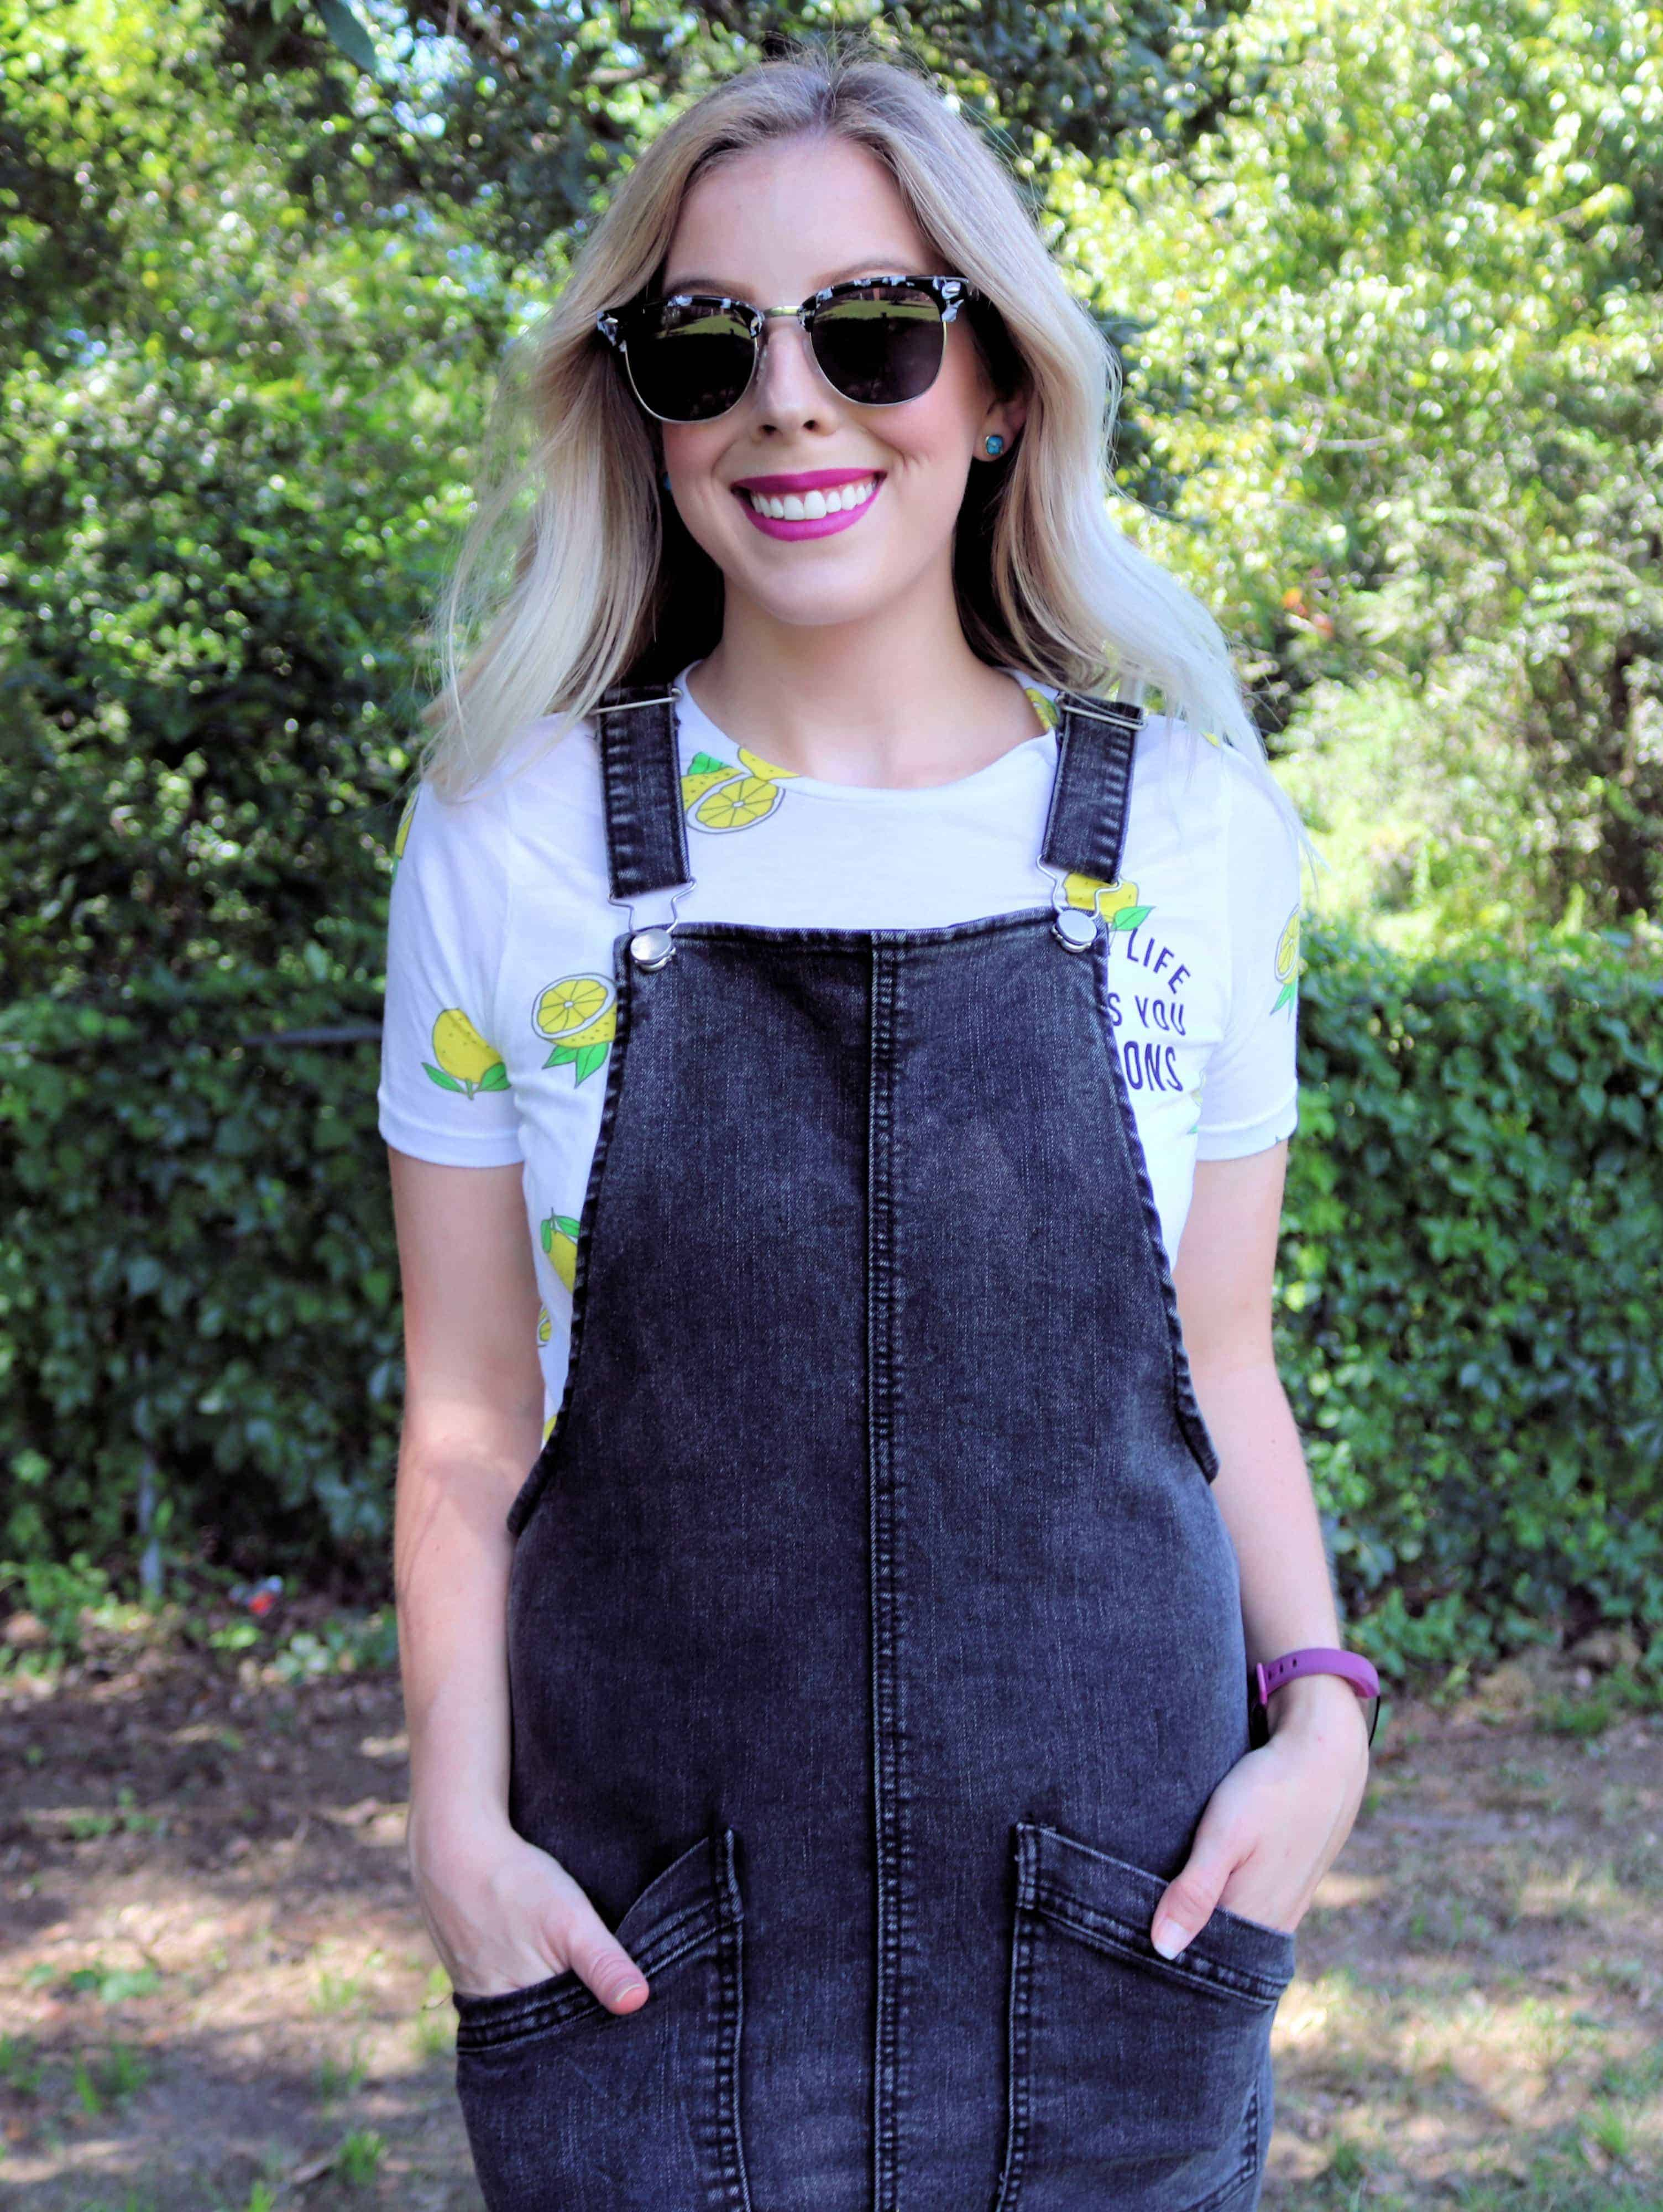 Sharing one of my favorite fashion items today for transitioning from summer to fall-Denim Overall Dresses! They're super cute and look great styled so many ways!Check out how I'm styling my favorite overall dress here.